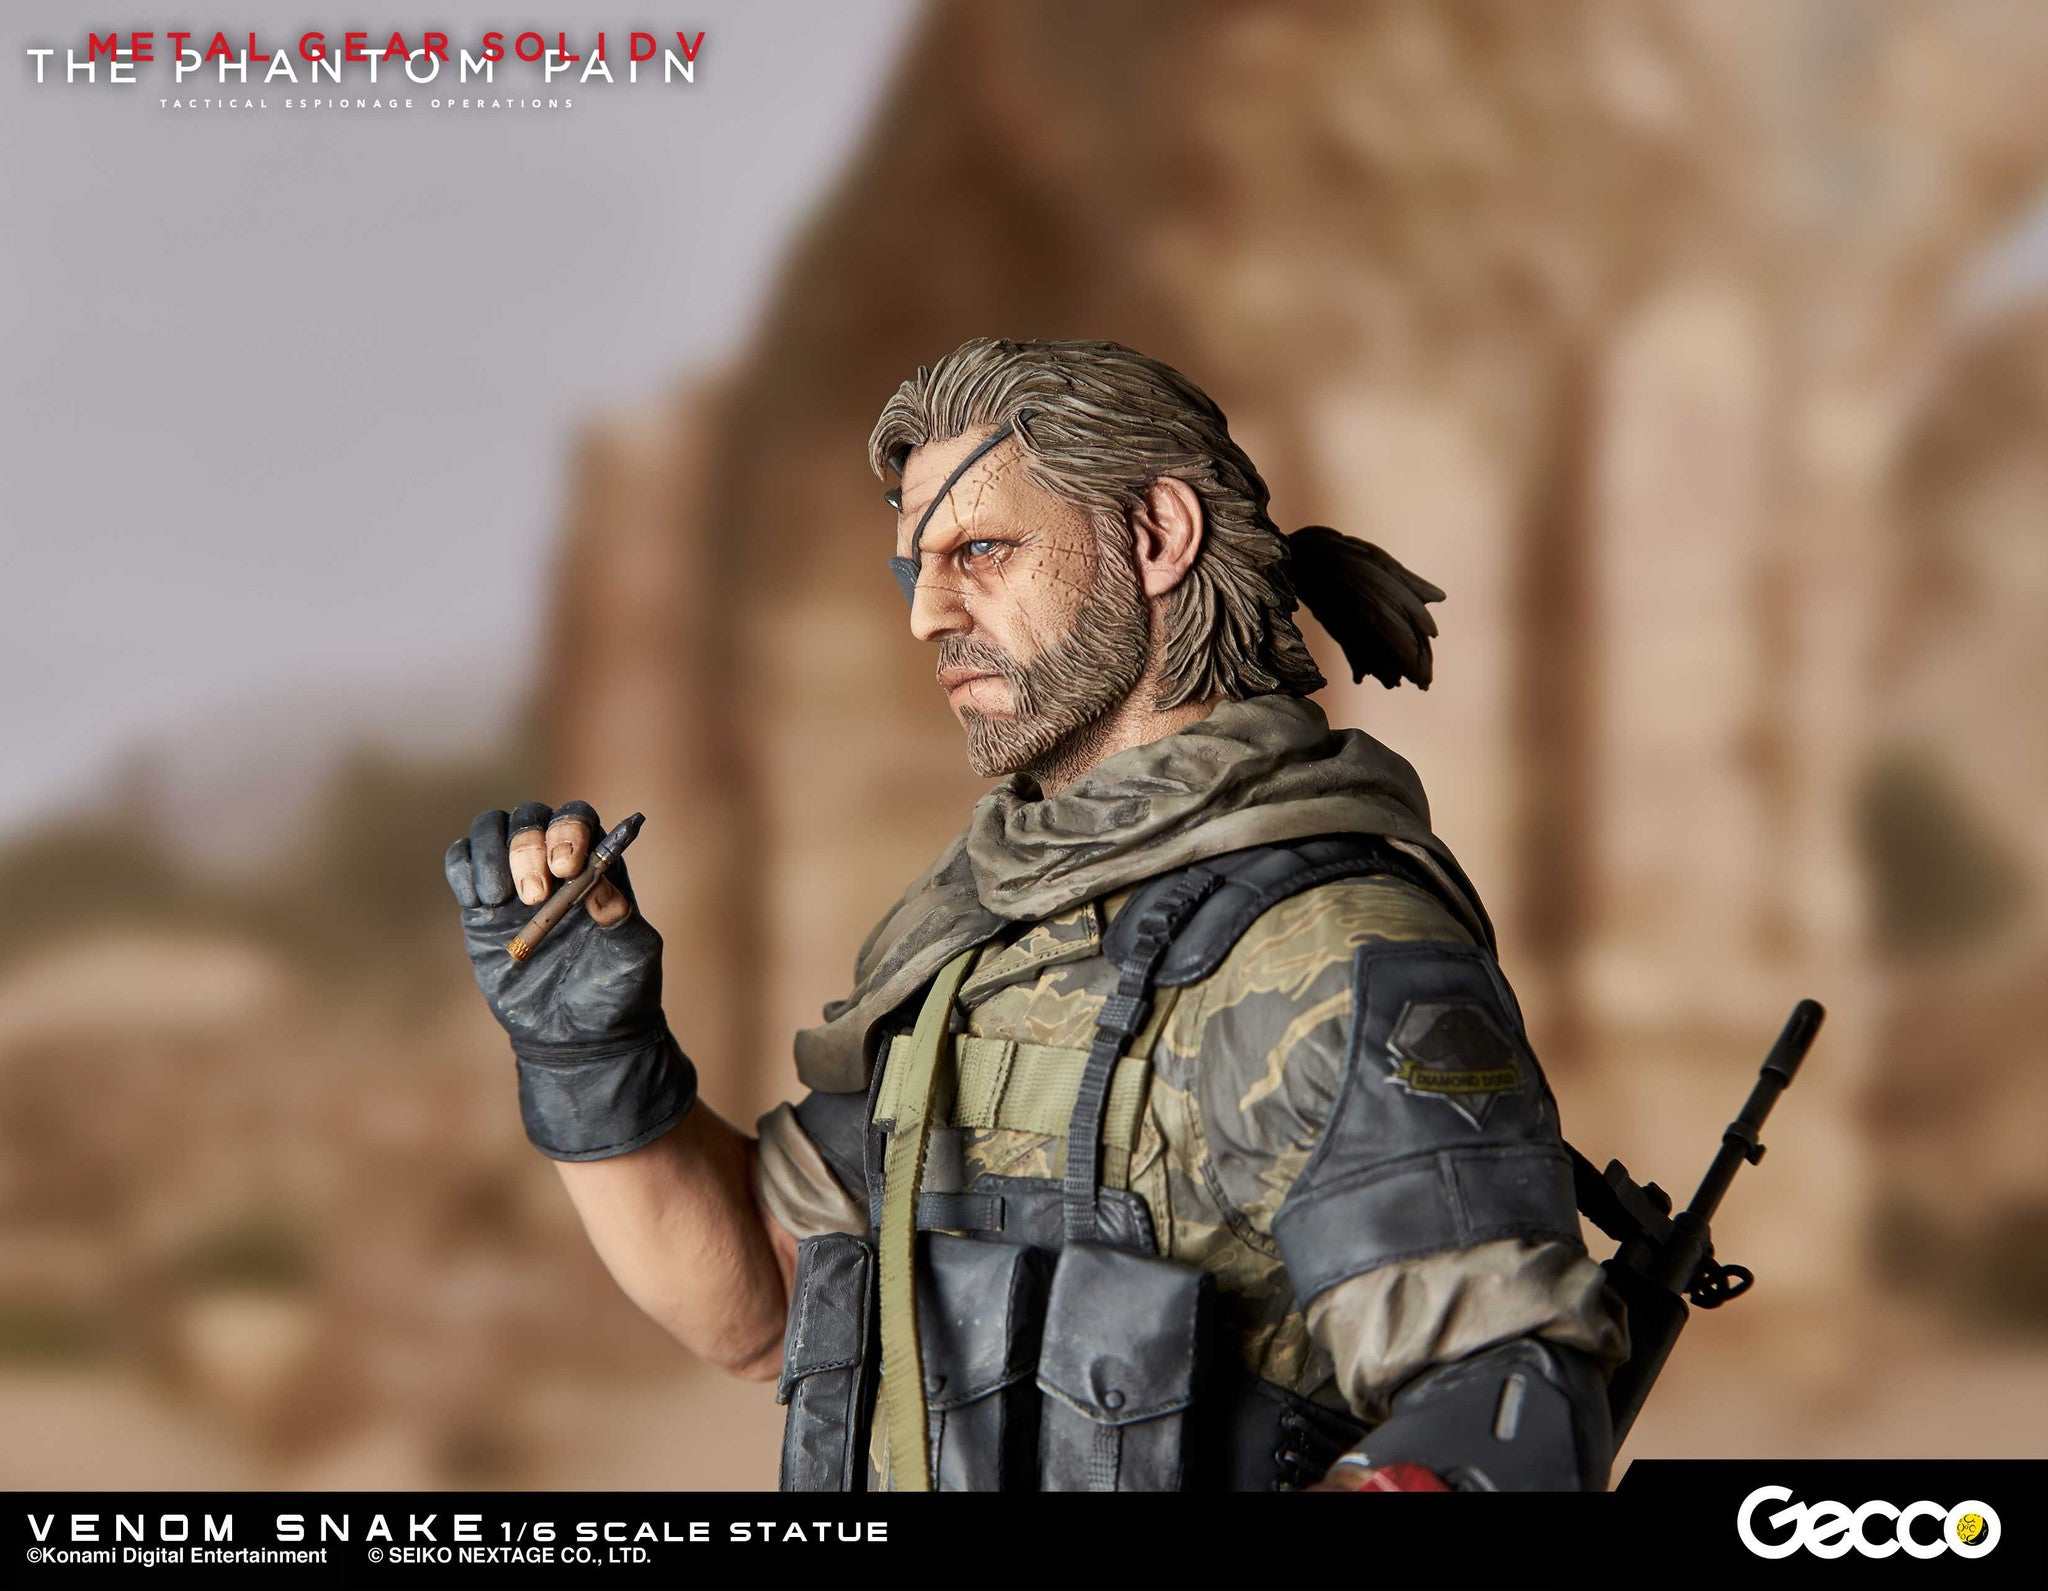 Gecco - Metal Gear Solid V: The Phantom Pain - Venom Snake 1/6 Scale Statue - Marvelous Toys - 6